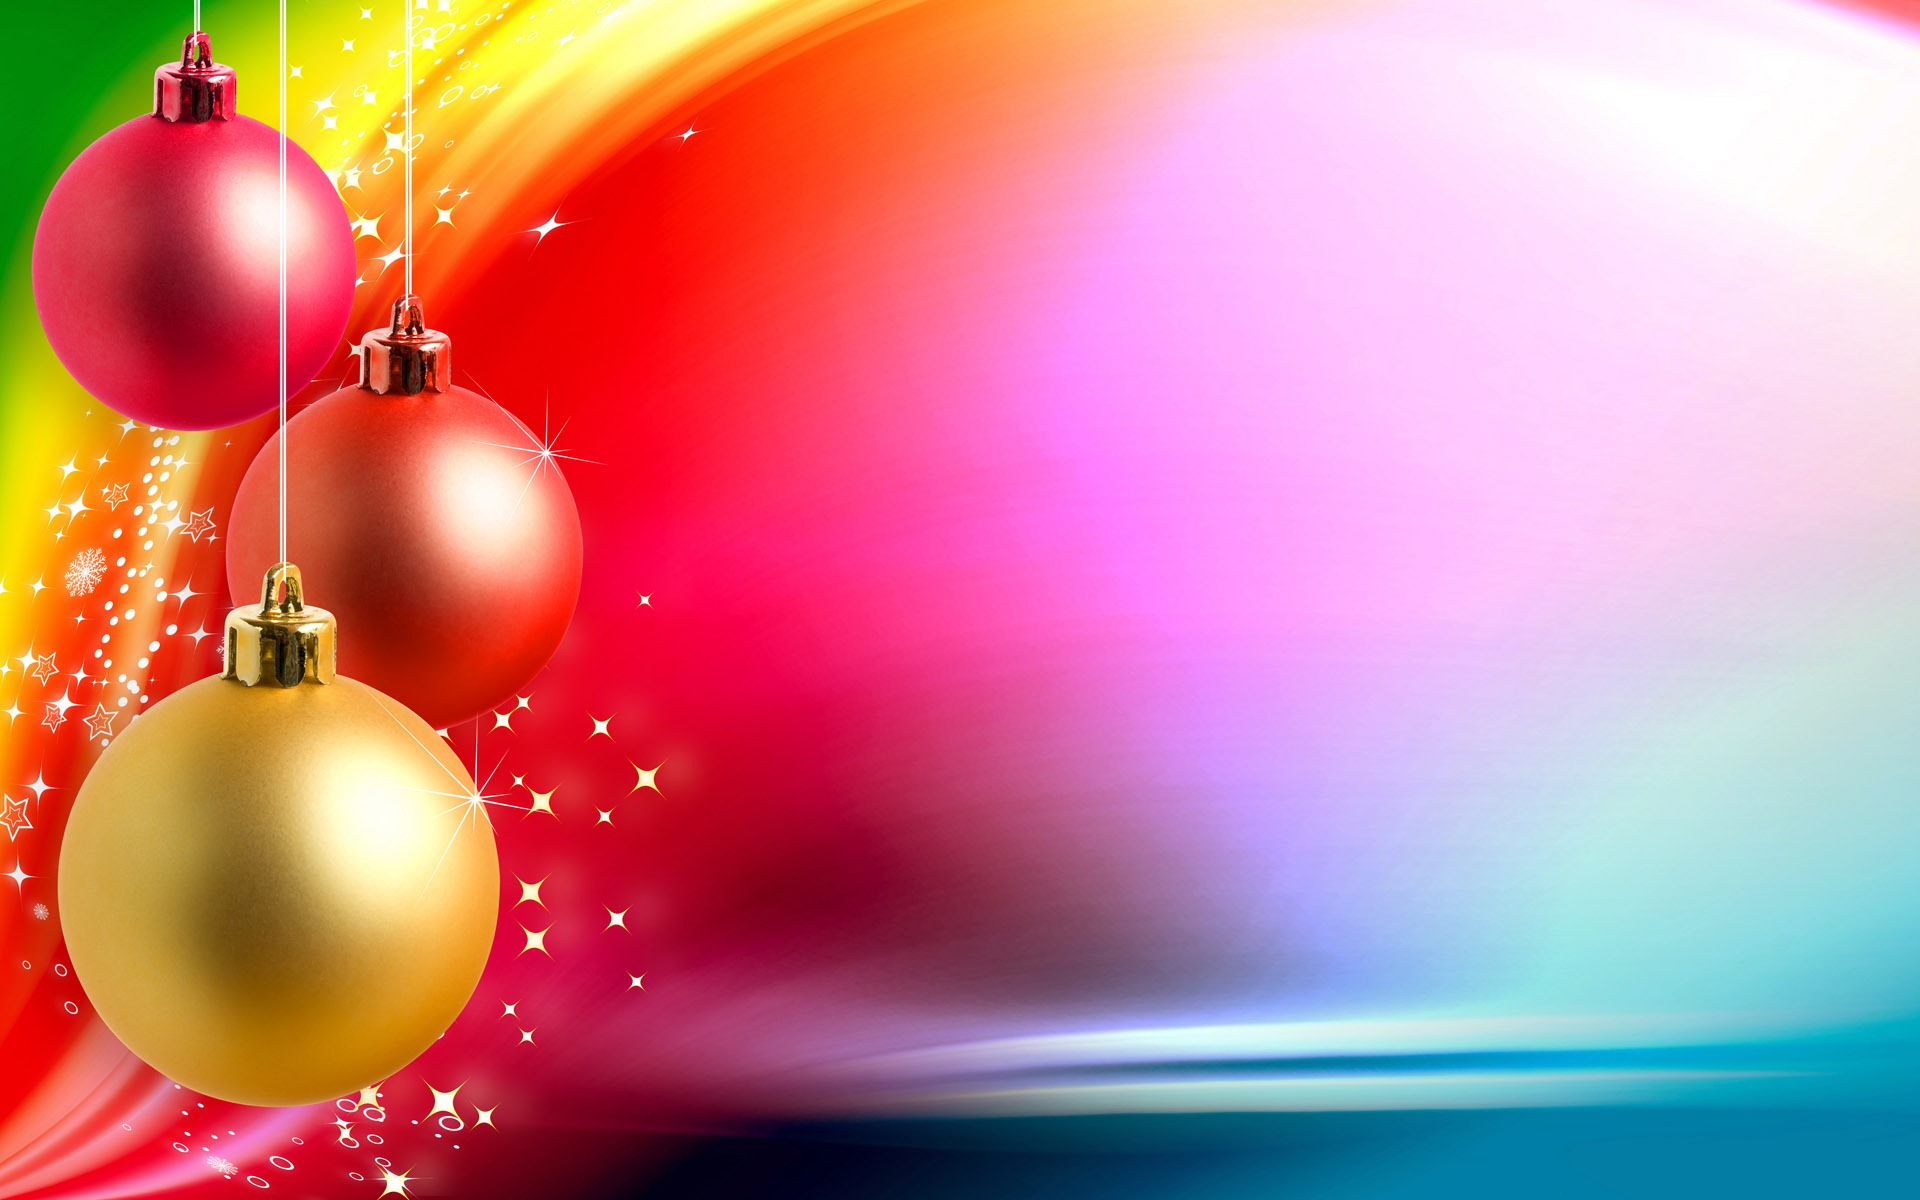 1920 christmas theme hd wallpapers (10) #12 - 1920x1200 wallpaper